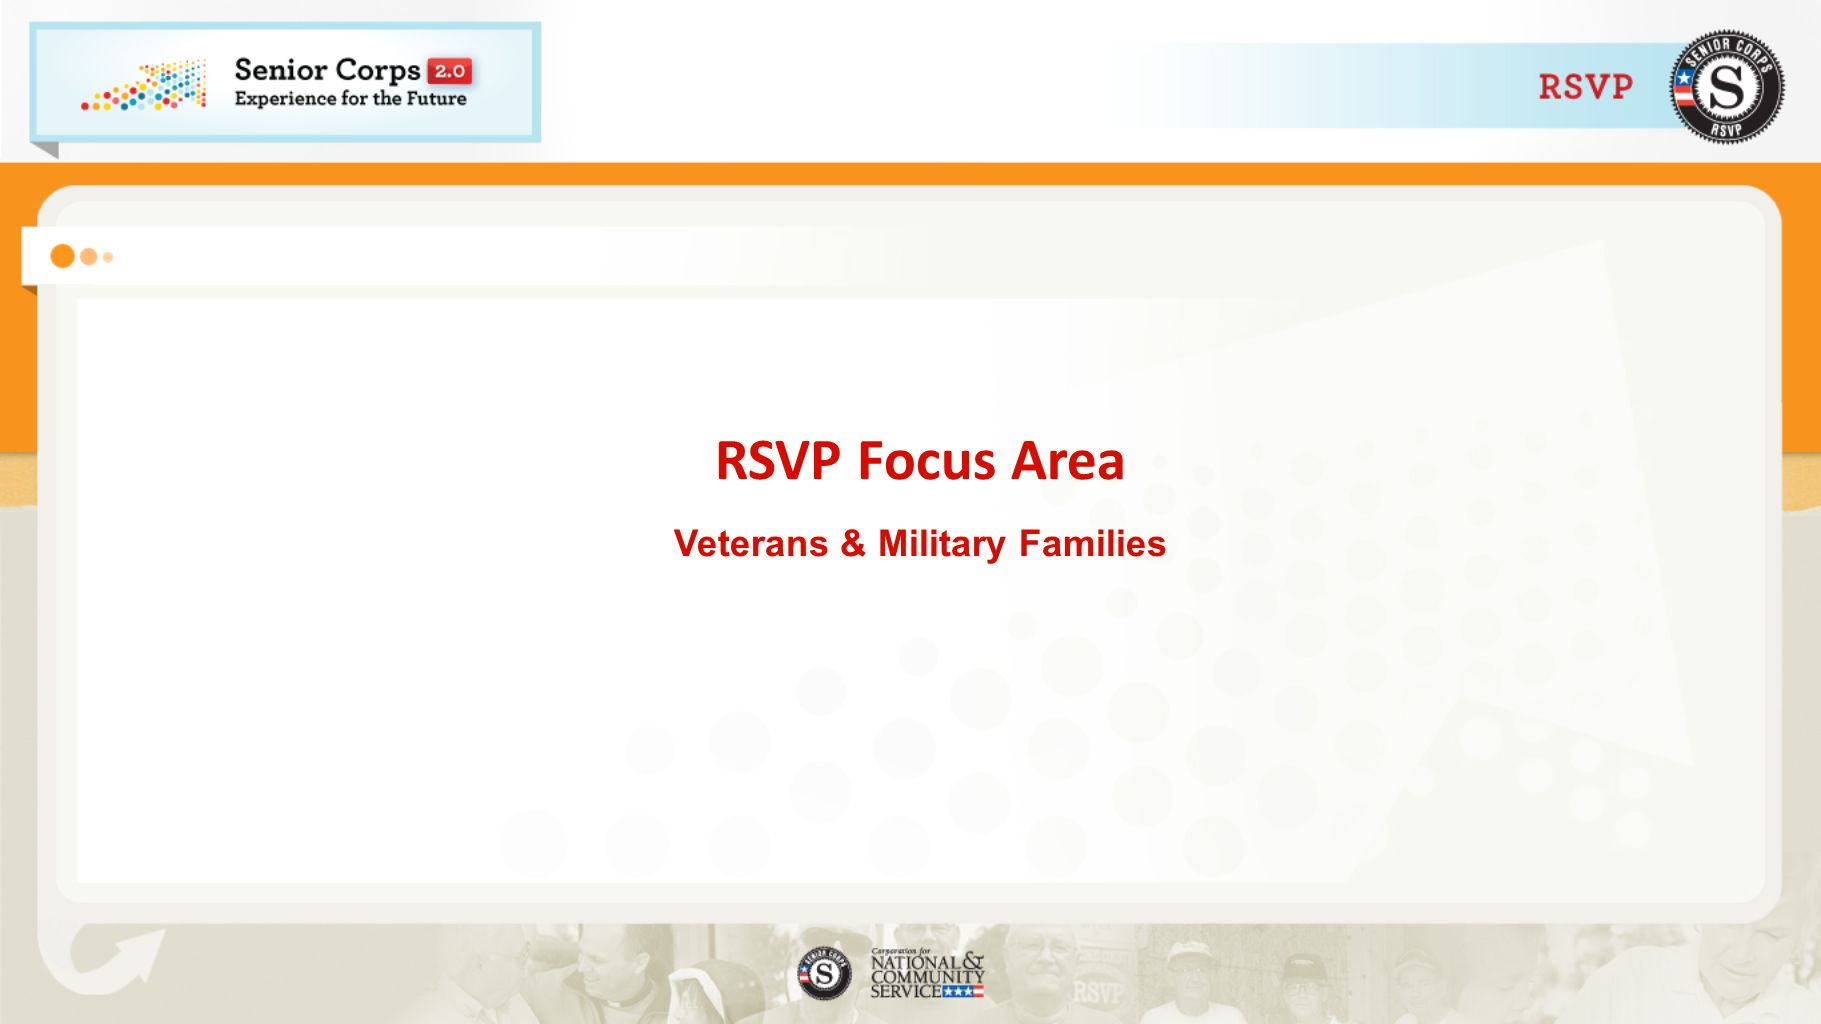 RSVP Focus Area Veterans & Military Families